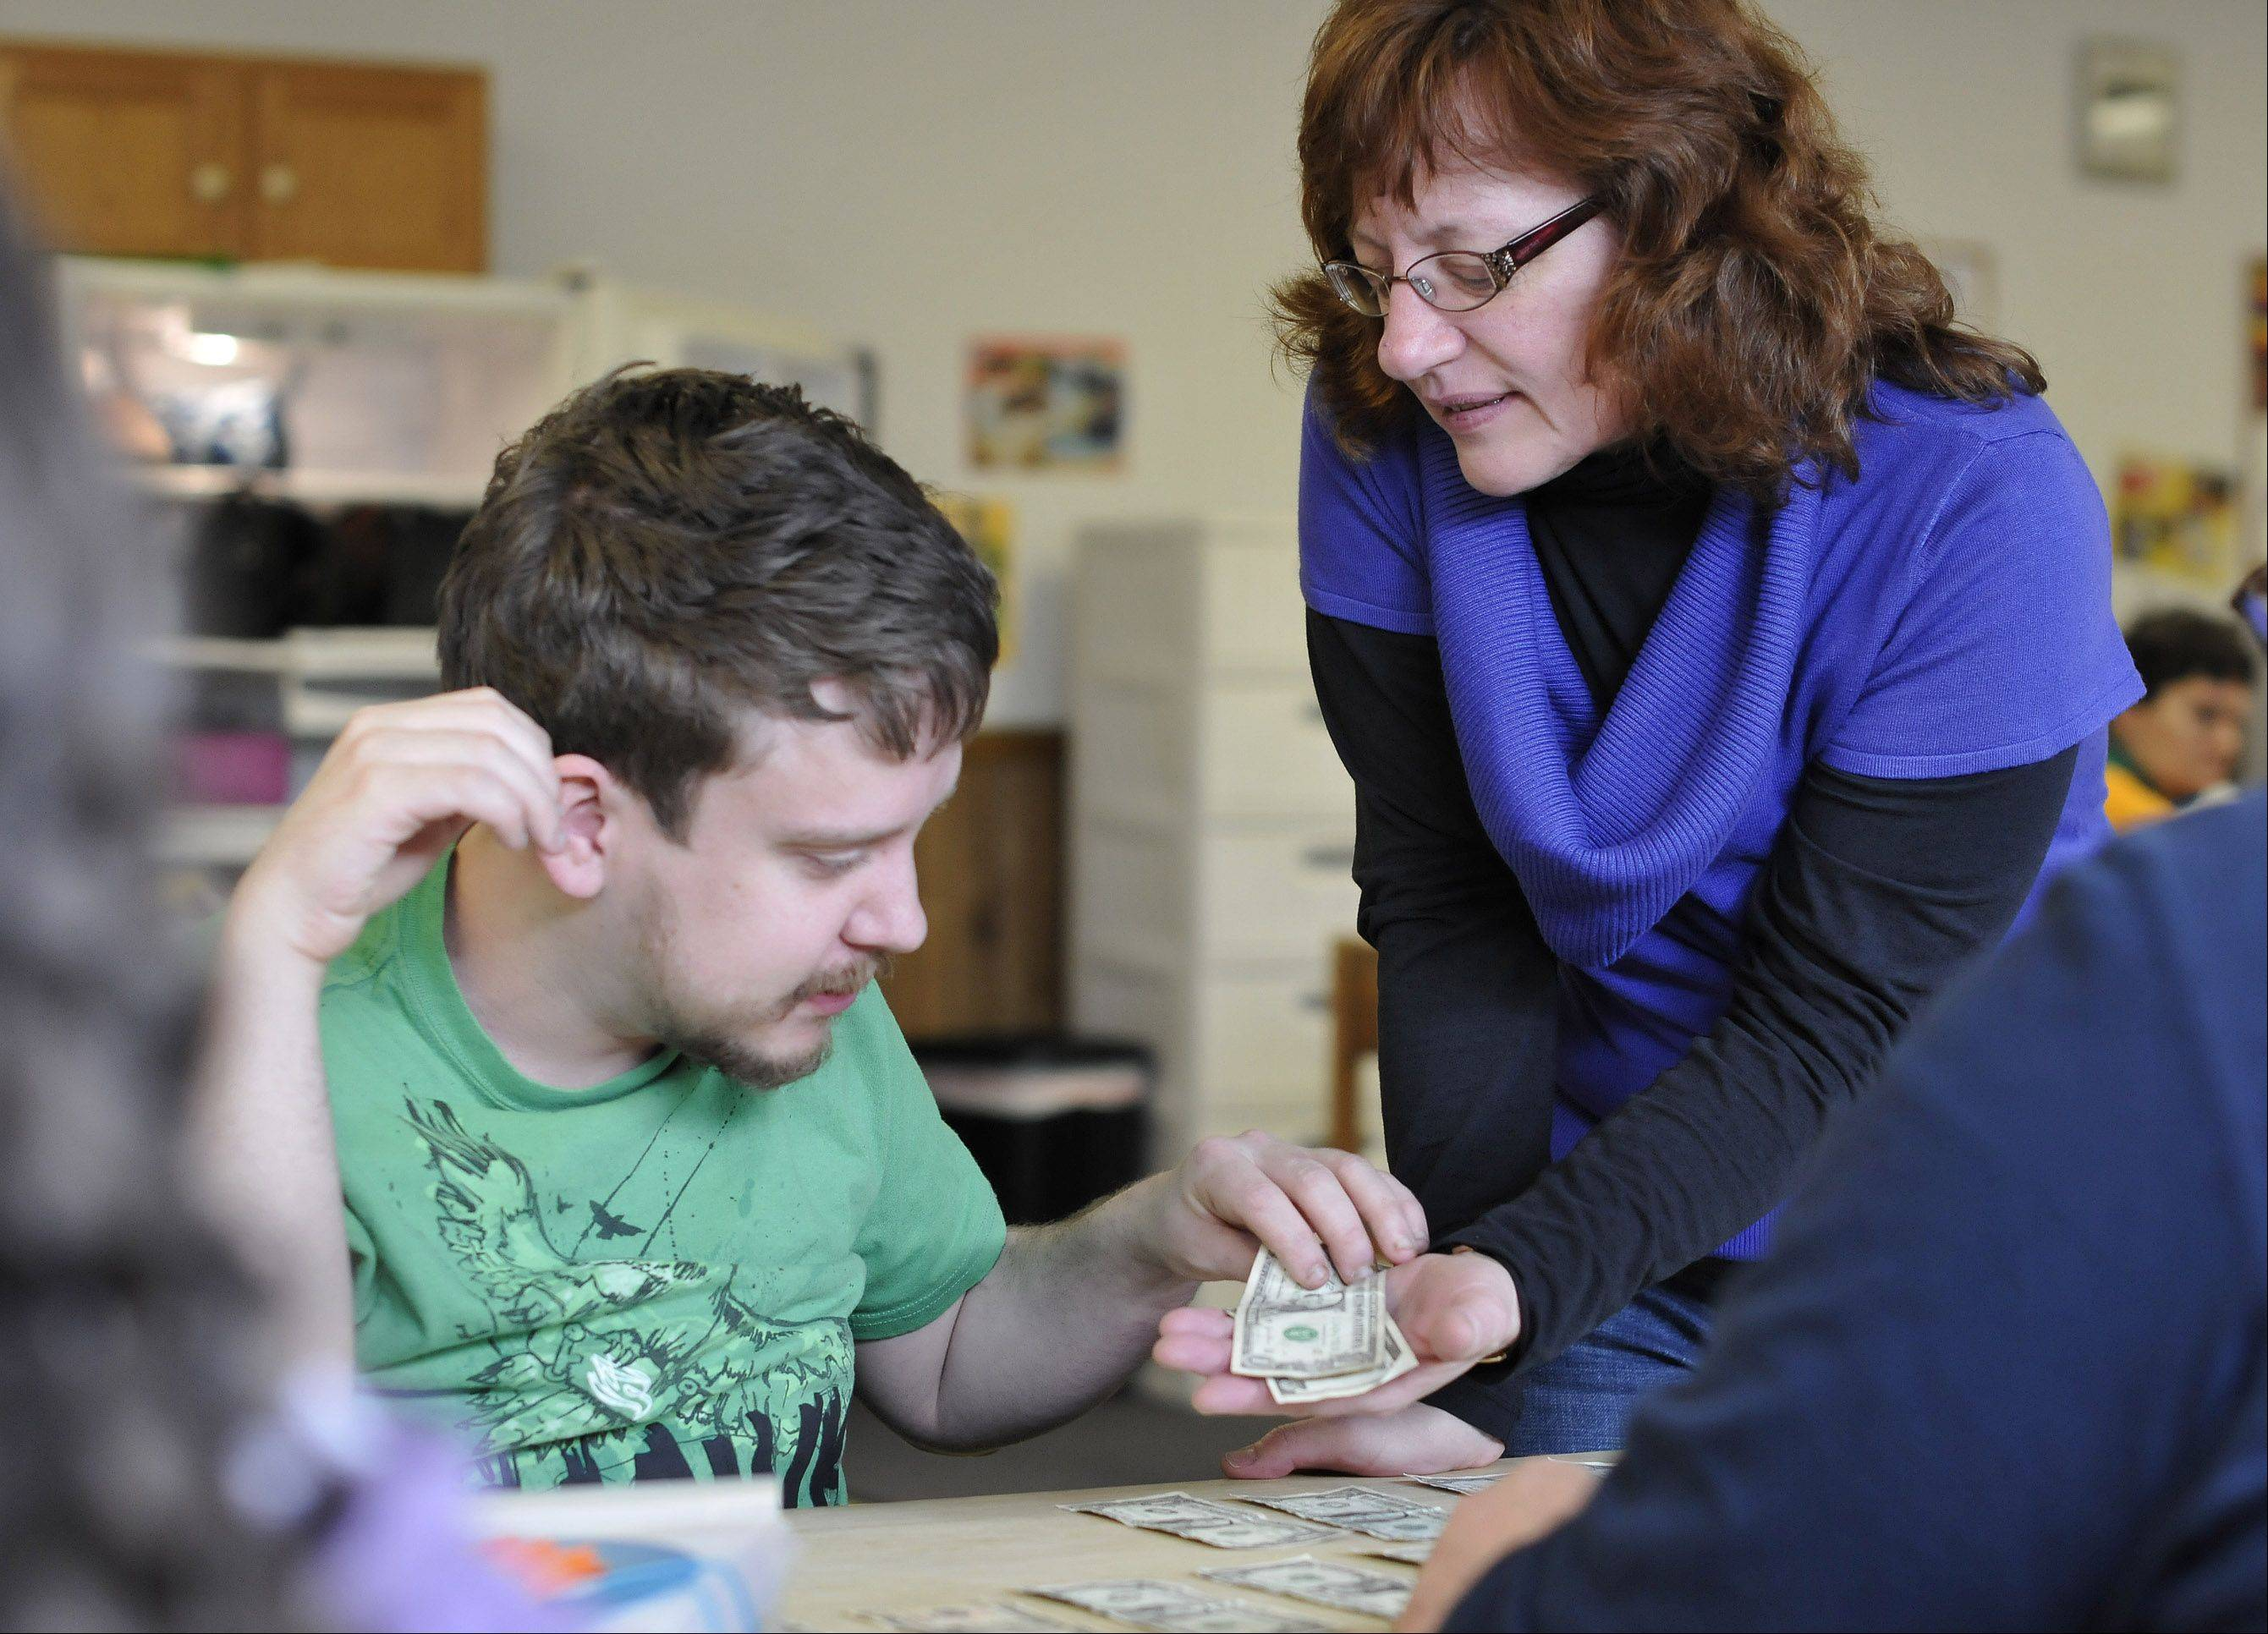 Marilyn Flanagan, president and executive director of RRAF, a Lombard nonprofit that provides day programming for adults with disabilities, helps client Michael Hodges count cash during a group activity.